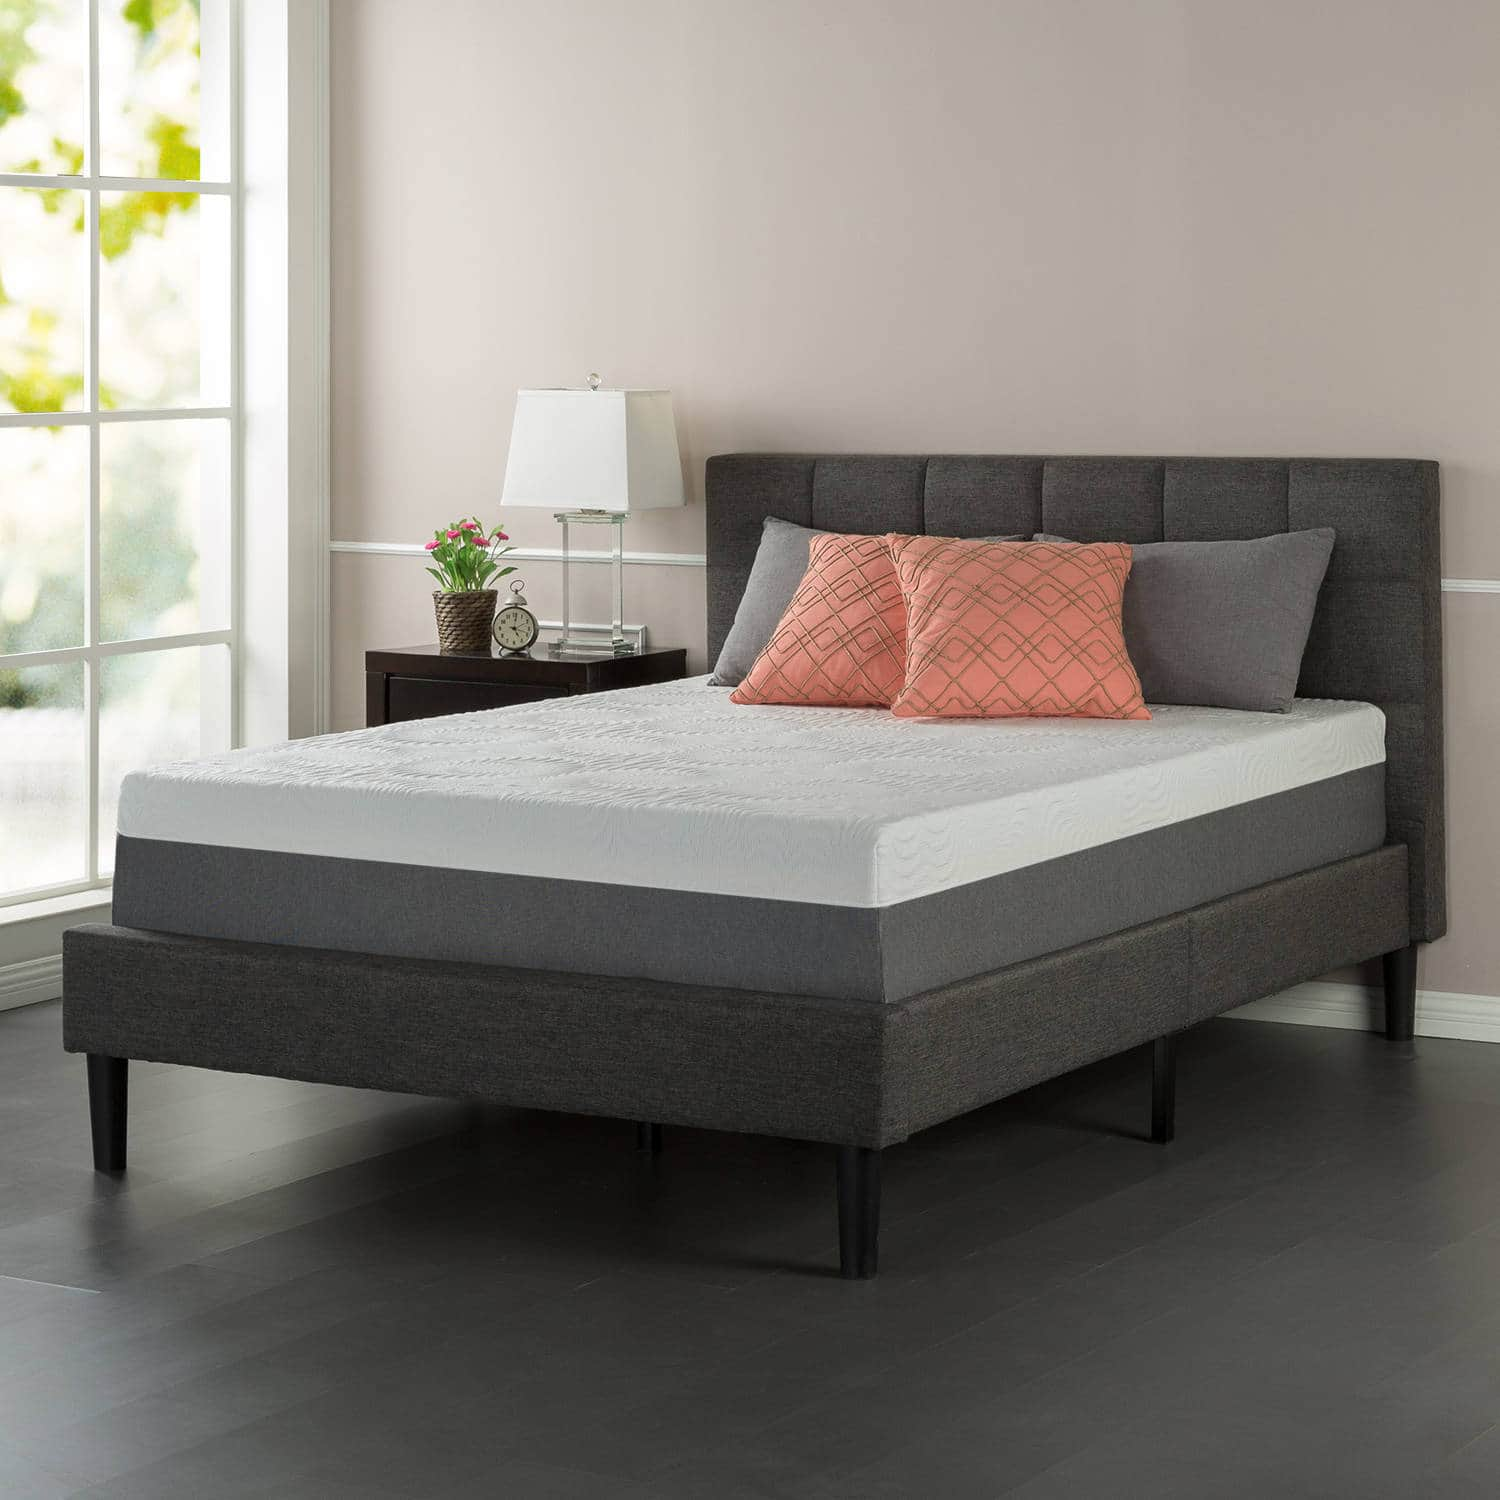 12 Better Homes Gardens Memory Foam Mattress King Slickdeals